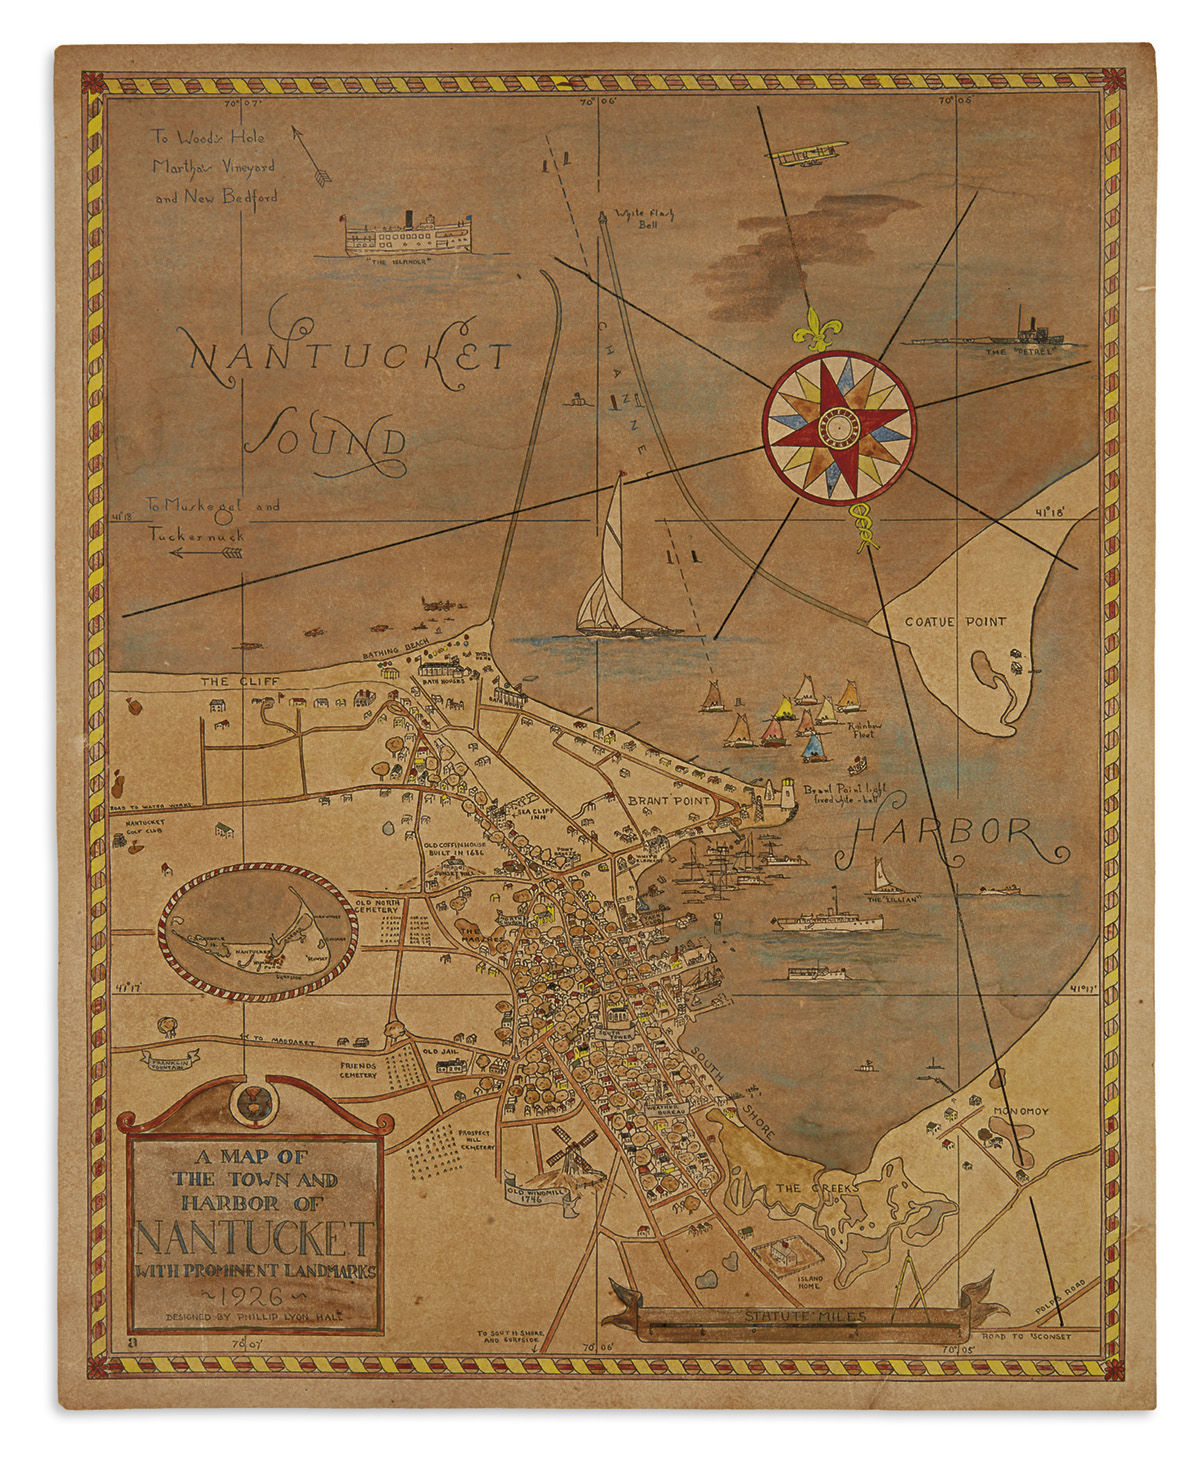 (NANTUCKET)-Hall-Phillip-Lyon-A-Map-of-the-Town-and-Harbor-o